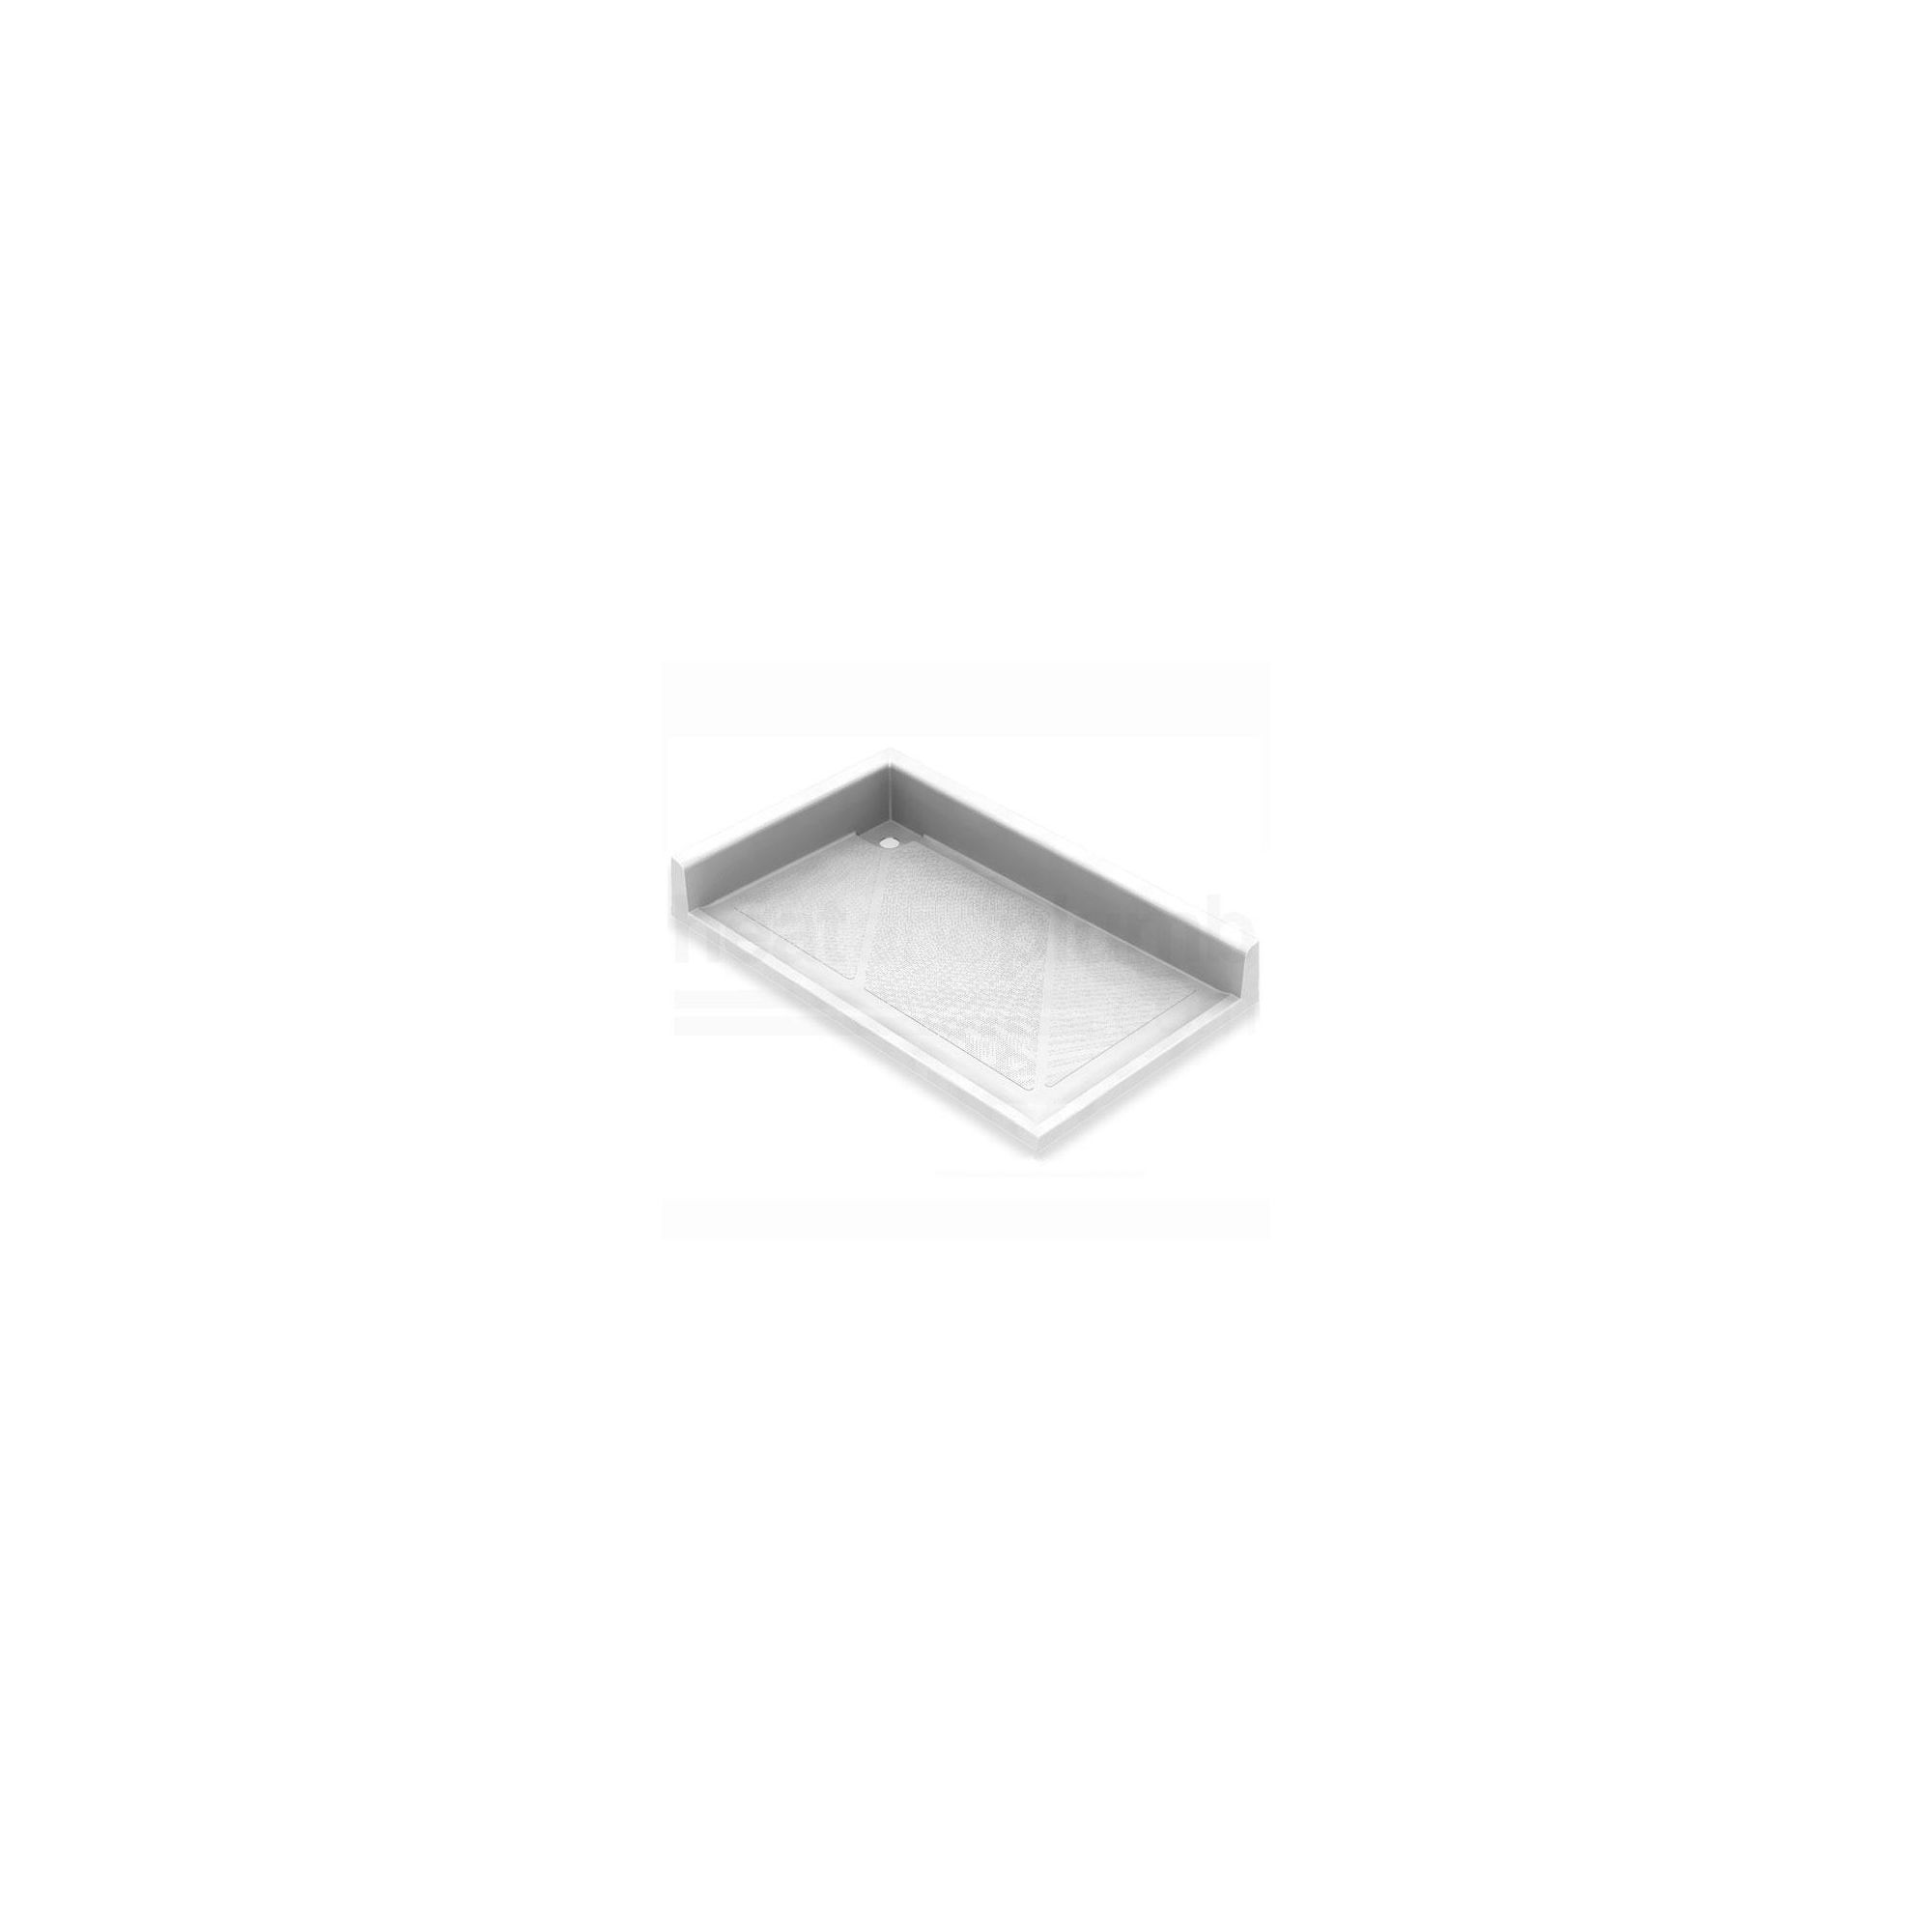 AKW Multi Spec Rectangular Shower Tray 1850mm x 750mm at Tesco Direct